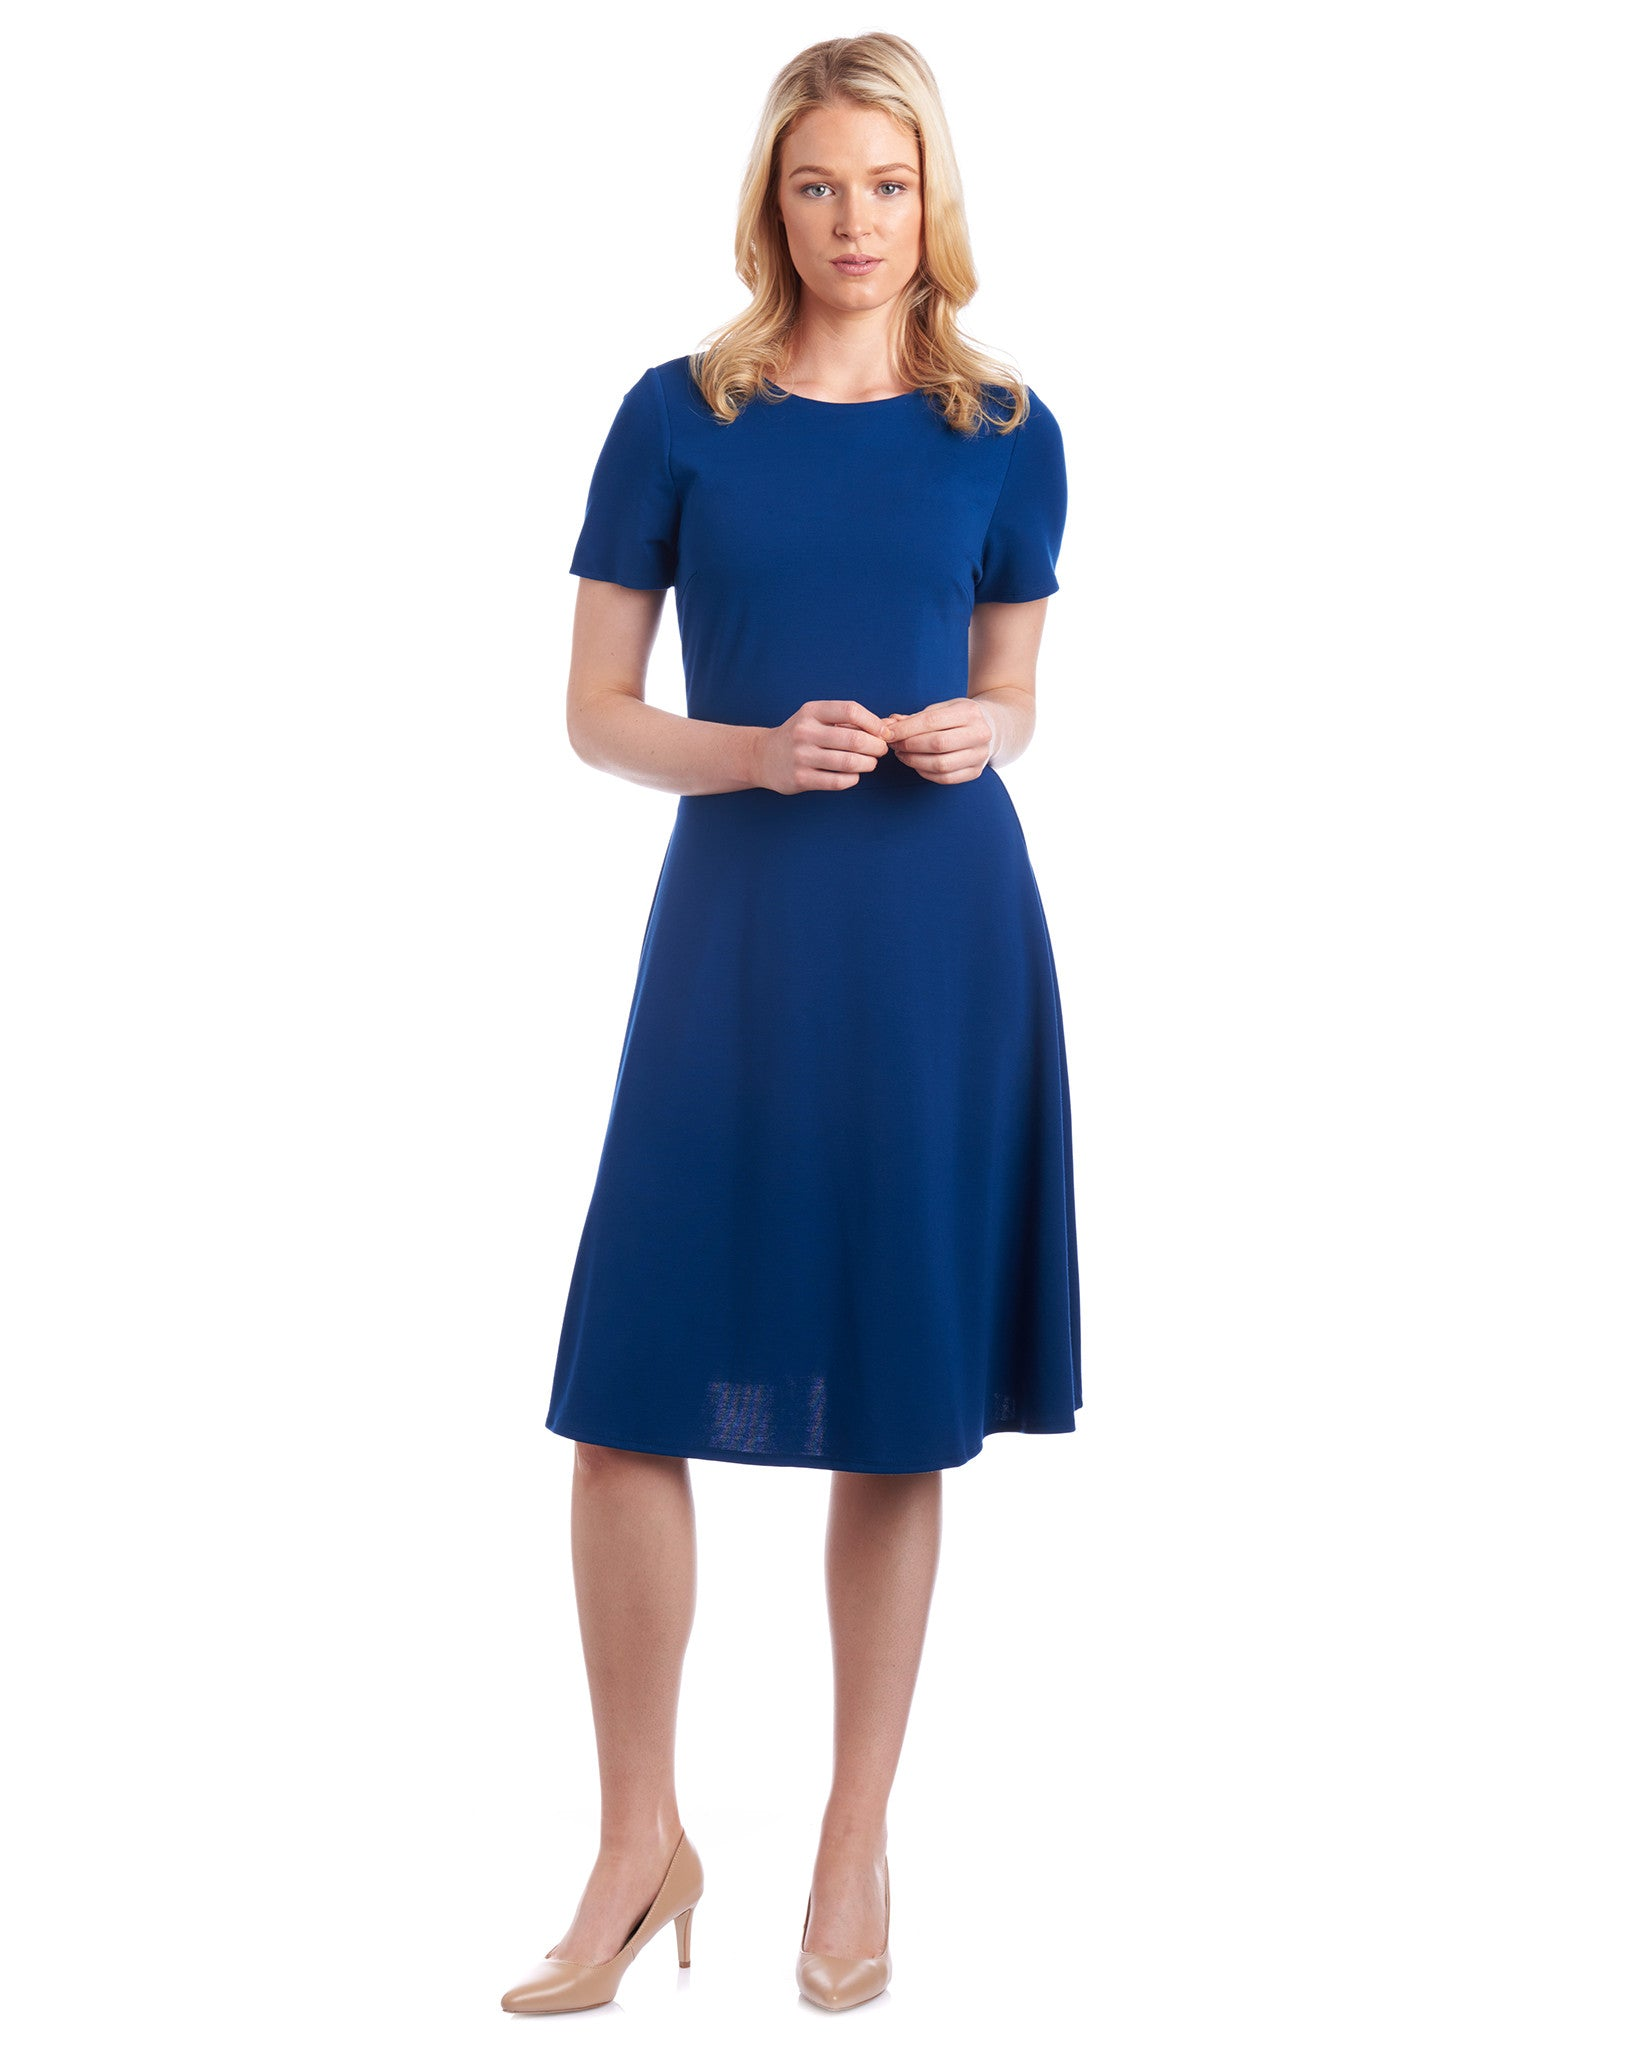 Customise the sleeve length on your fit & flare dress. Choose from above the elbow, below the elbow to short sleeve.